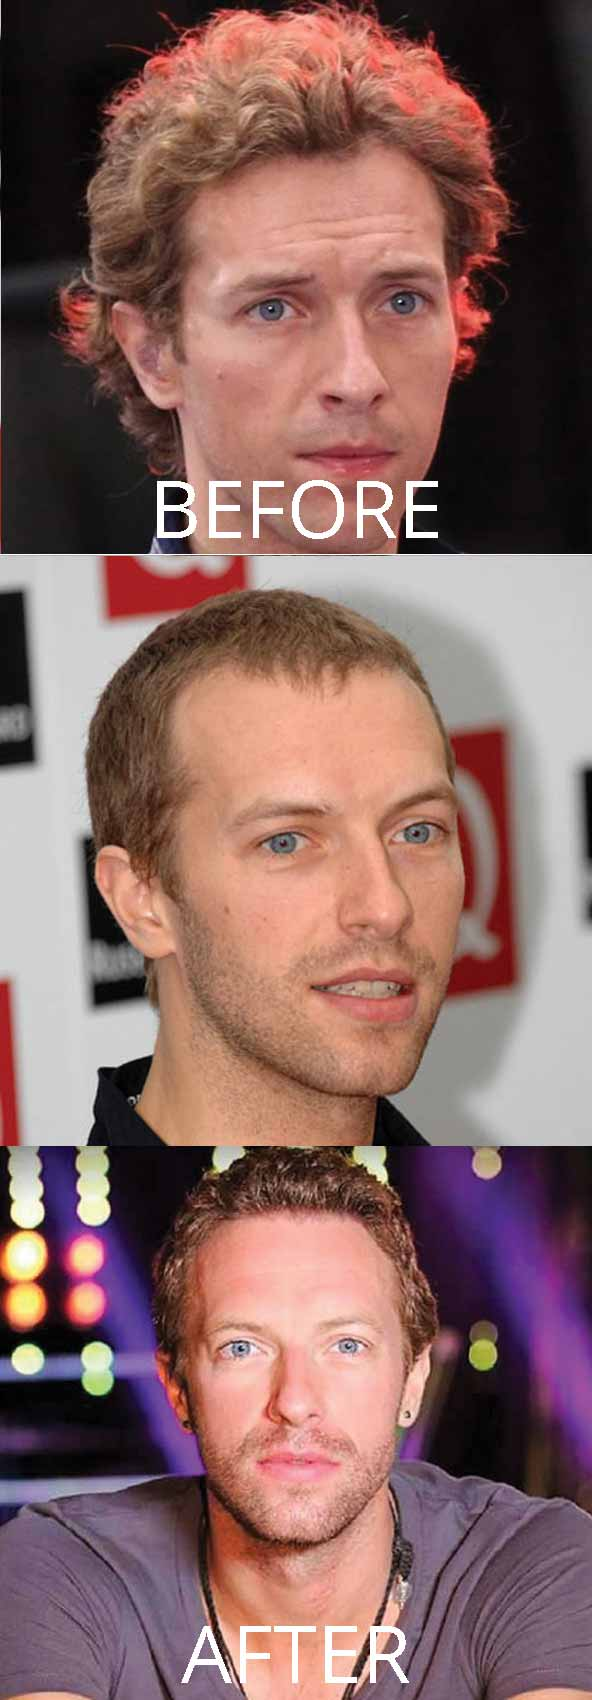 hollywood-celebrity-hair-transplant-loss-widows-peak-(11)-chris-martin